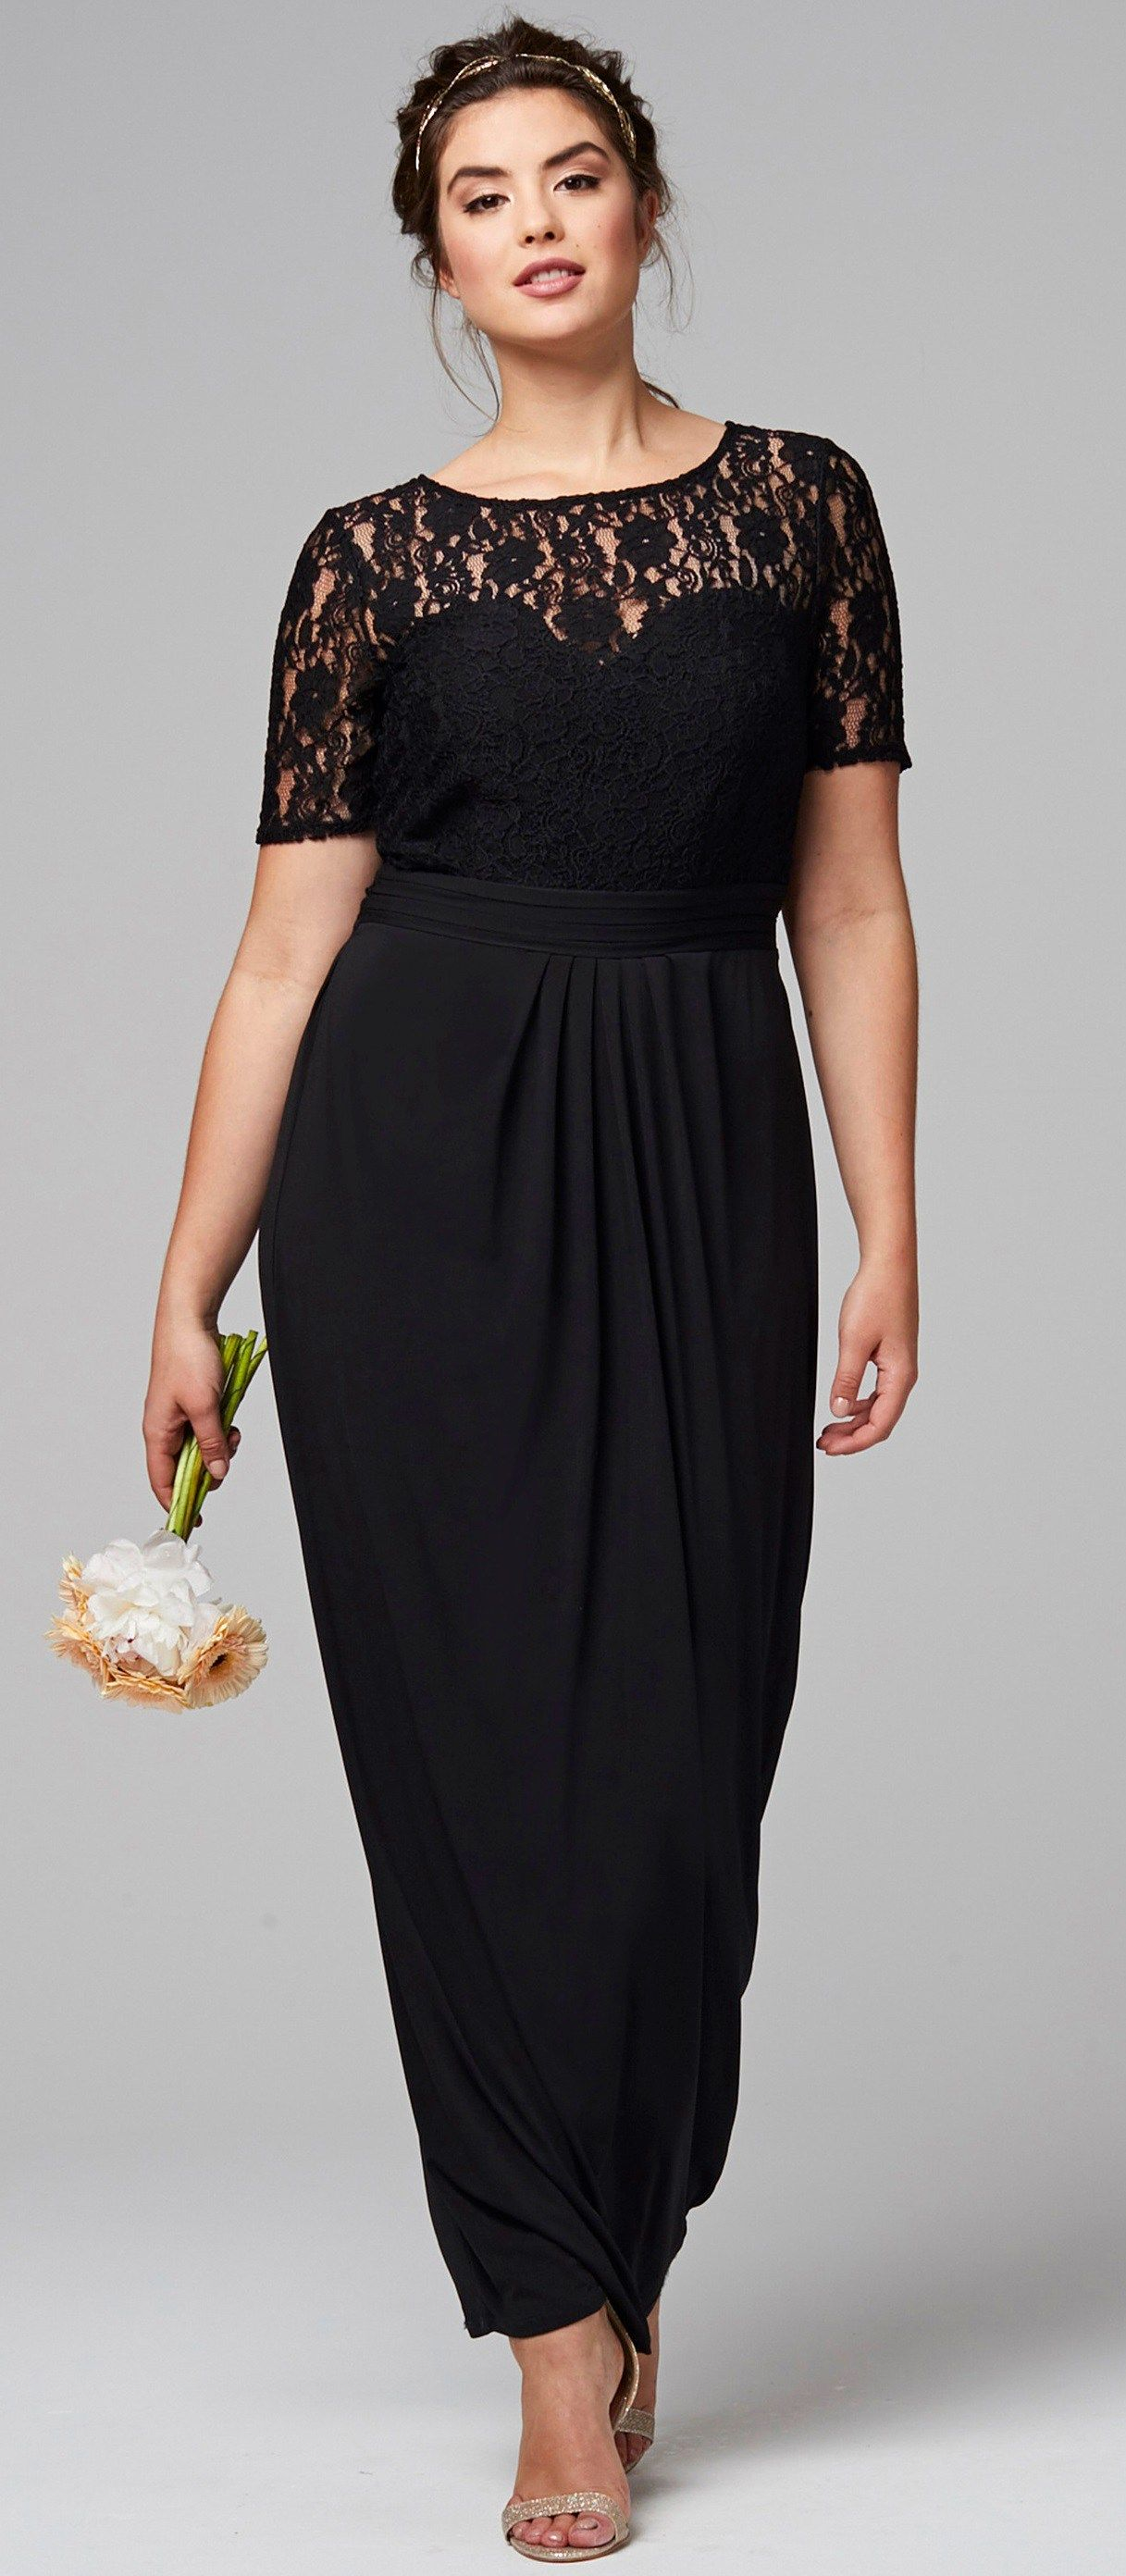 45 Plus Size Wedding Guest Dresses With Sleeves Tail Alexawebb